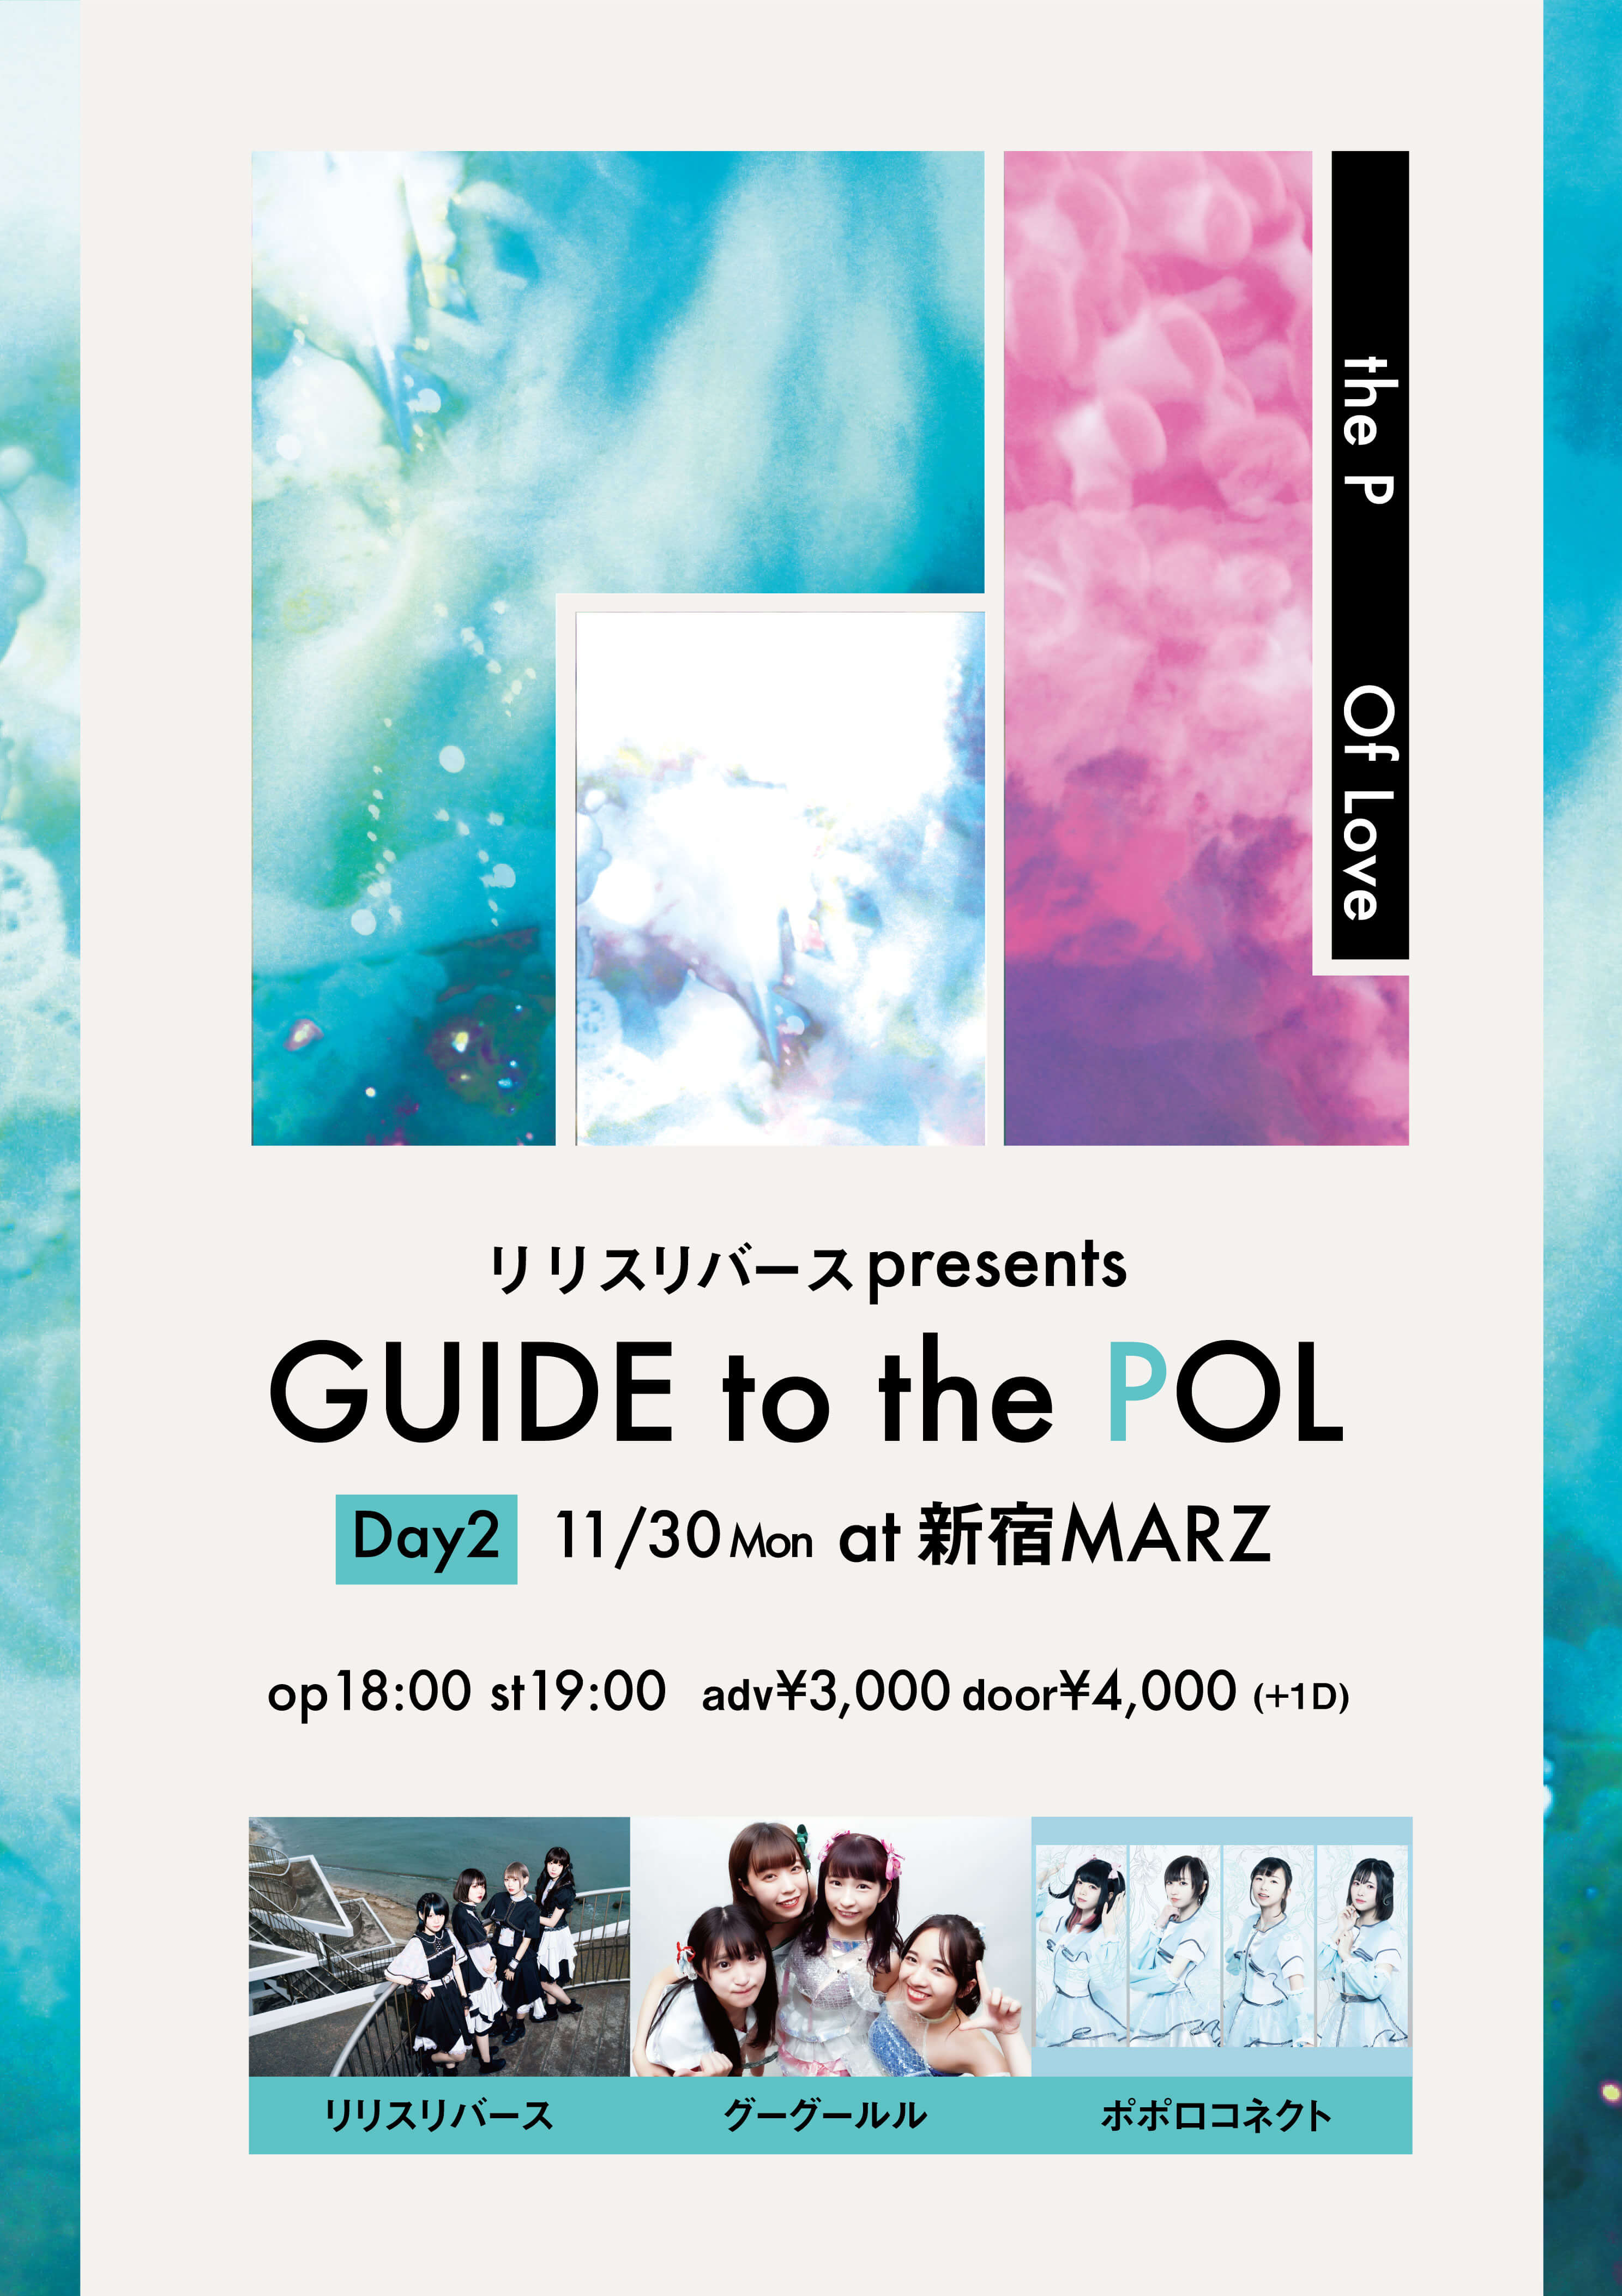 【Day2】リリスリバース presents 「GUIDE to the POL」